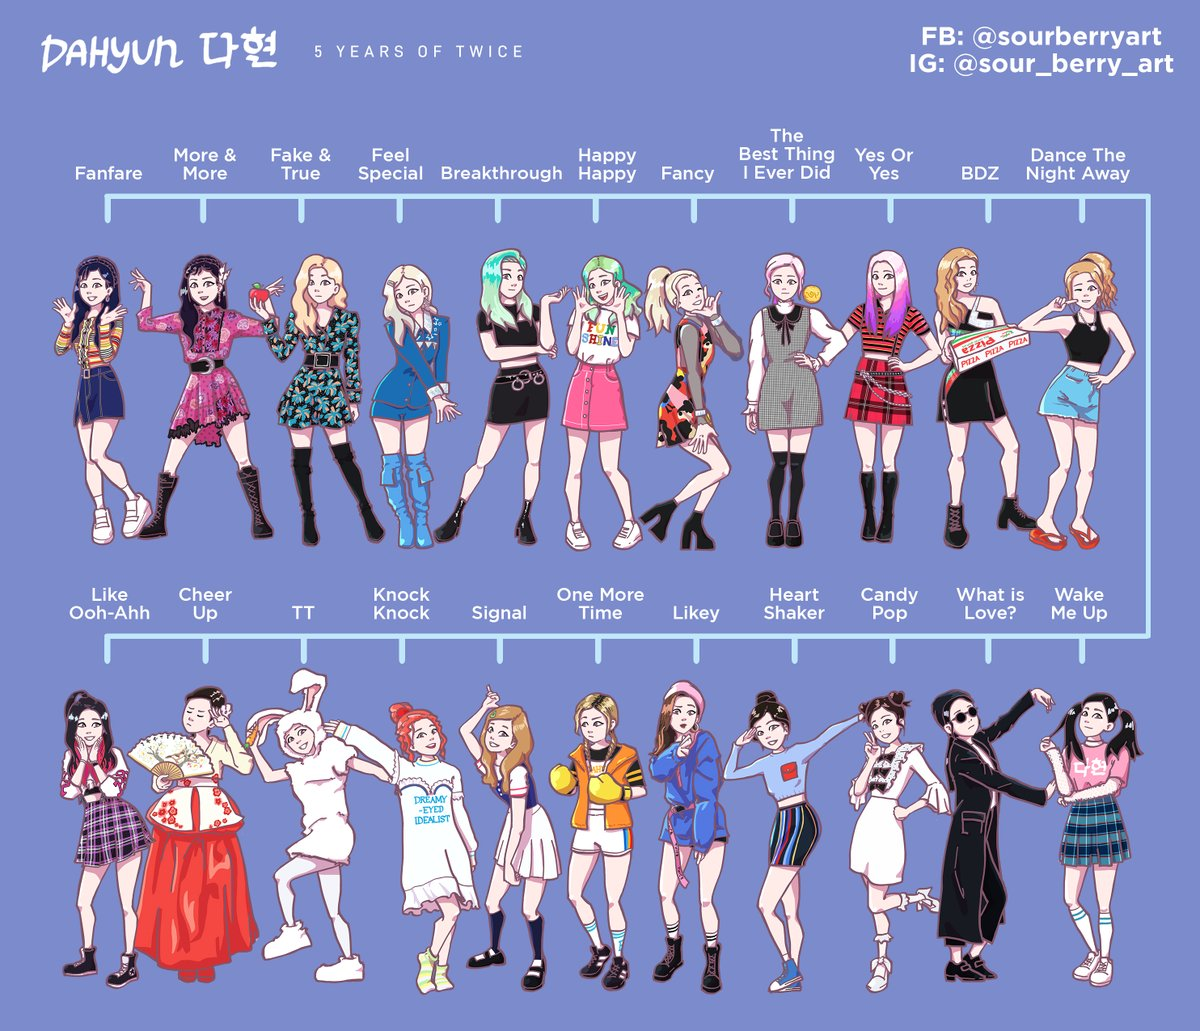 Artist @sour_berry_art has made illustrations of @JYPETWICEs Dahyun and Chaeyoung for each era and we are loving every single artwork 😍💗 We wanna see more, more, more 🥺👉👈 #TWICE #MOREandMORE